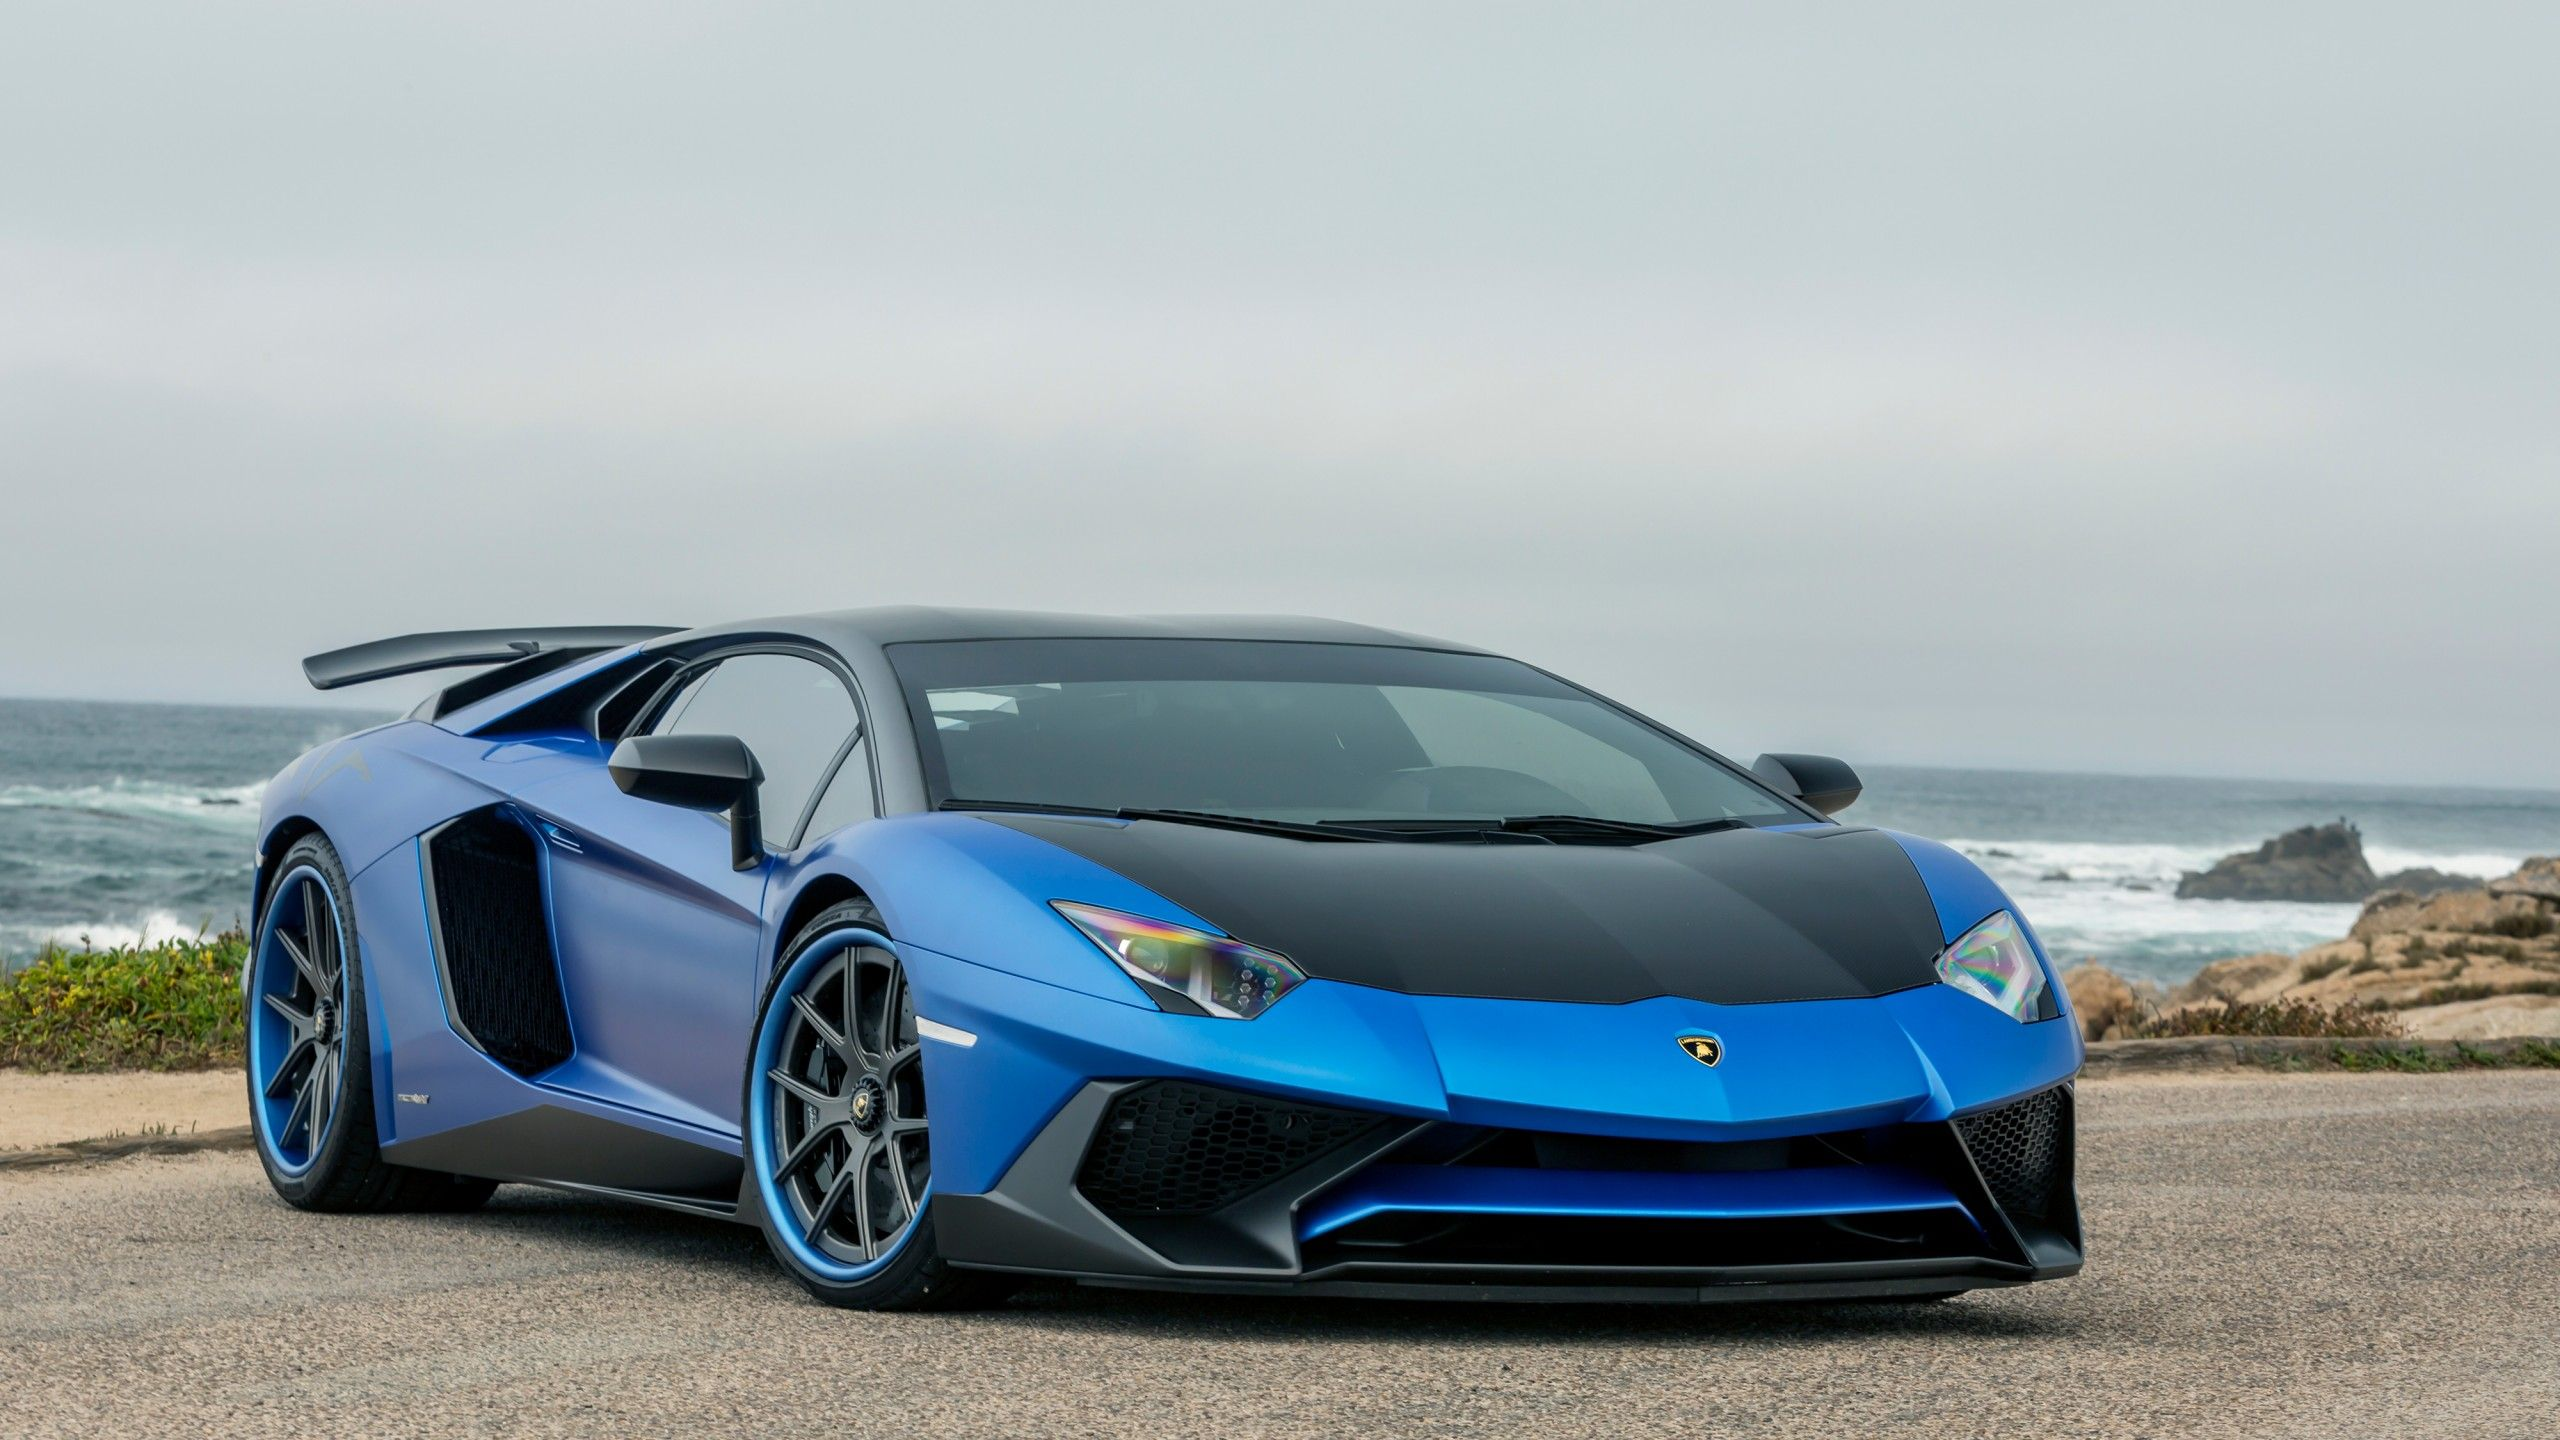 Lamborghini Car HD Wallpapers